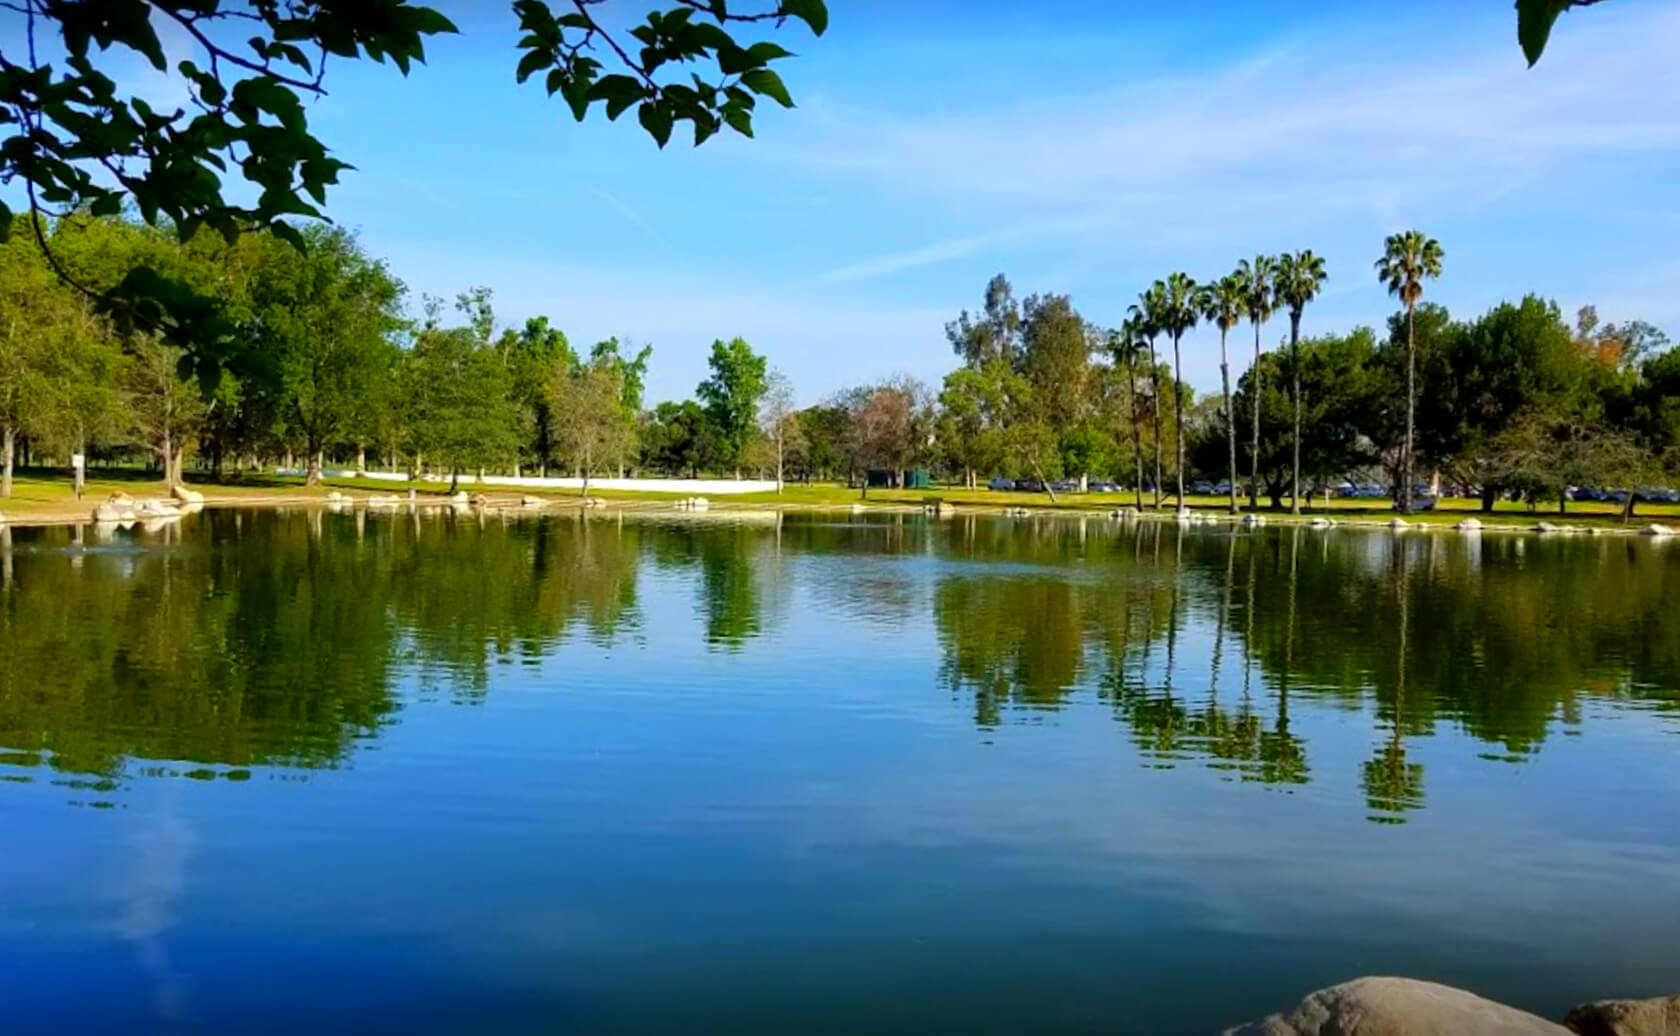 Mile-Square-Park-Lake-Fishing-Guide-Report-Fountain-Valley-CA-05